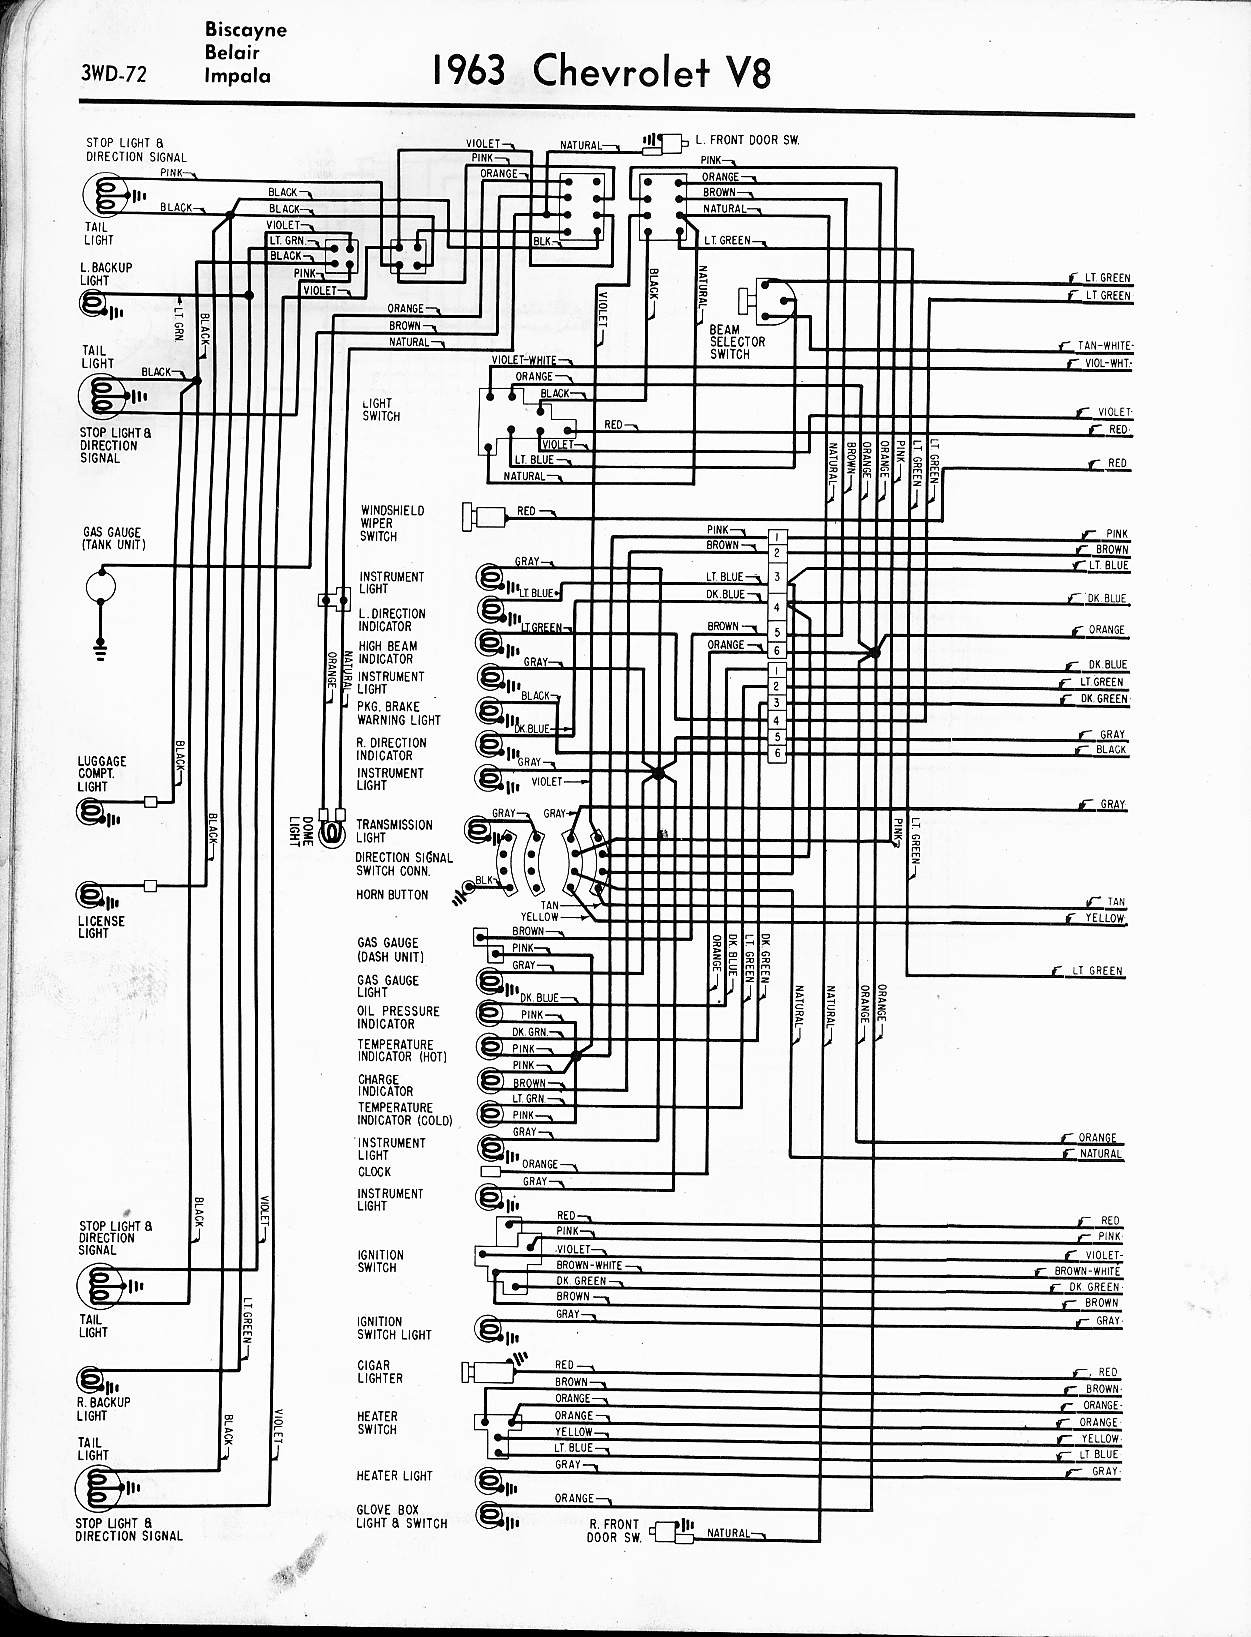 1965 chevrolet wiring diagram schematic harness wiring diagram wiring diagram 1965 chevy impala wiring diagram expert 1965 chevrolet wiring diagram schematic harness